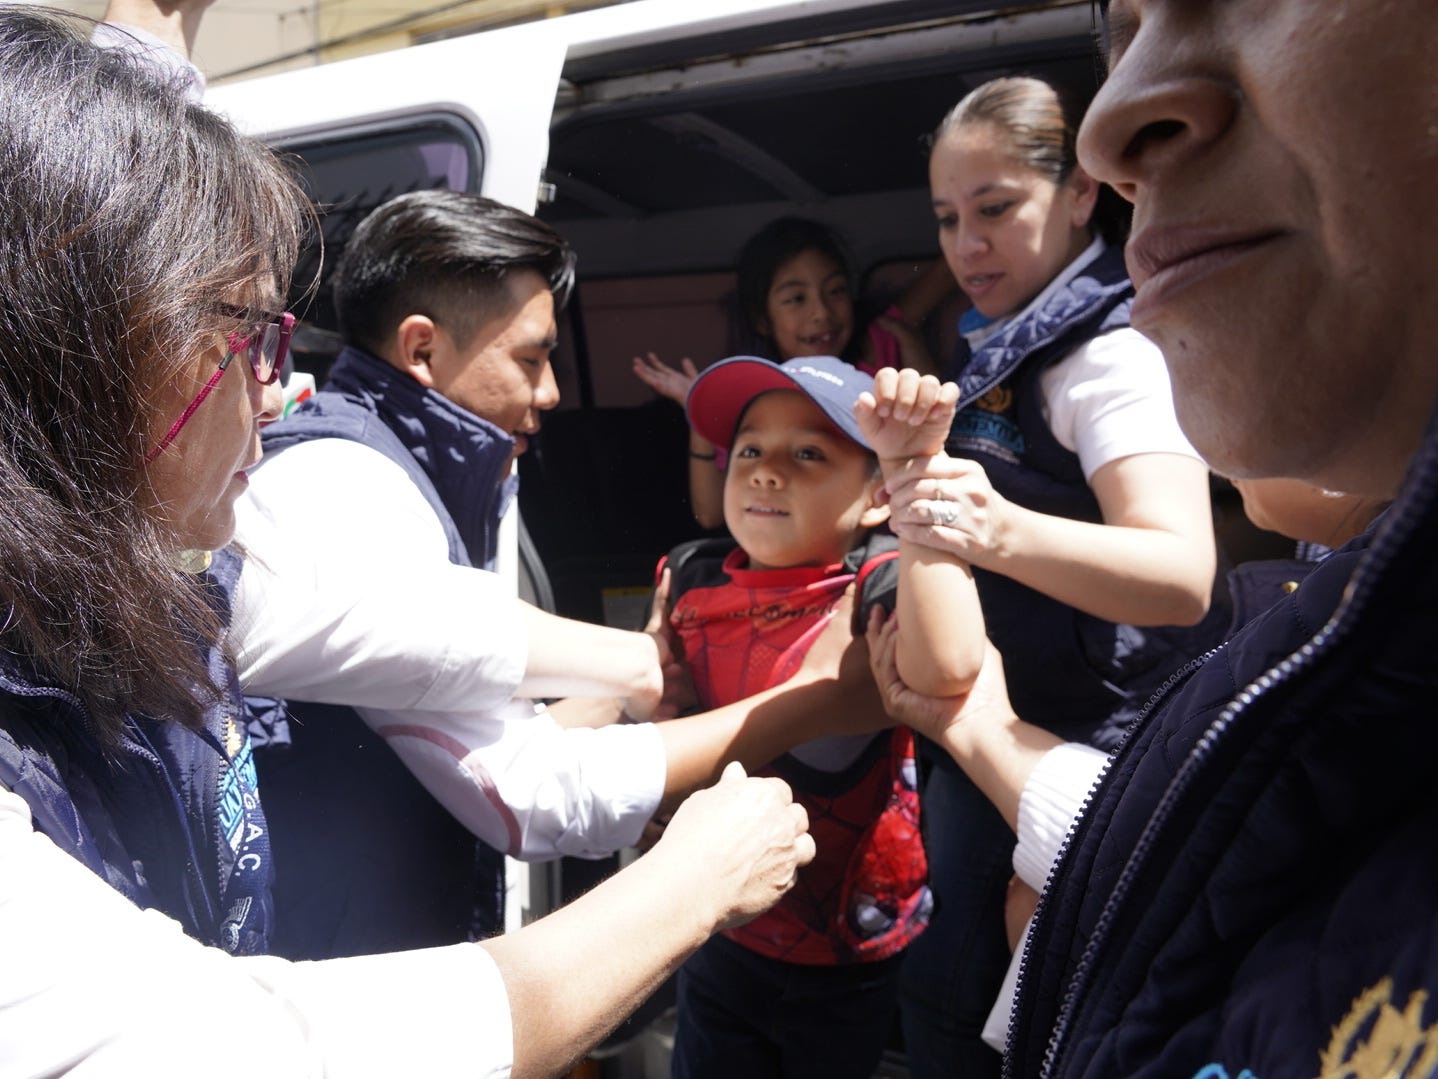 Leo Jeancarlo DeLeon, 6, arrives at the shelter in Guatemala to be reunite with his mother, Lourdes Marianela De Leon, who was deported to Guatemala without him. They were separated when he was taken from her by CBP officials two days after they entered the US illegally near San Luis, Arizona in May.